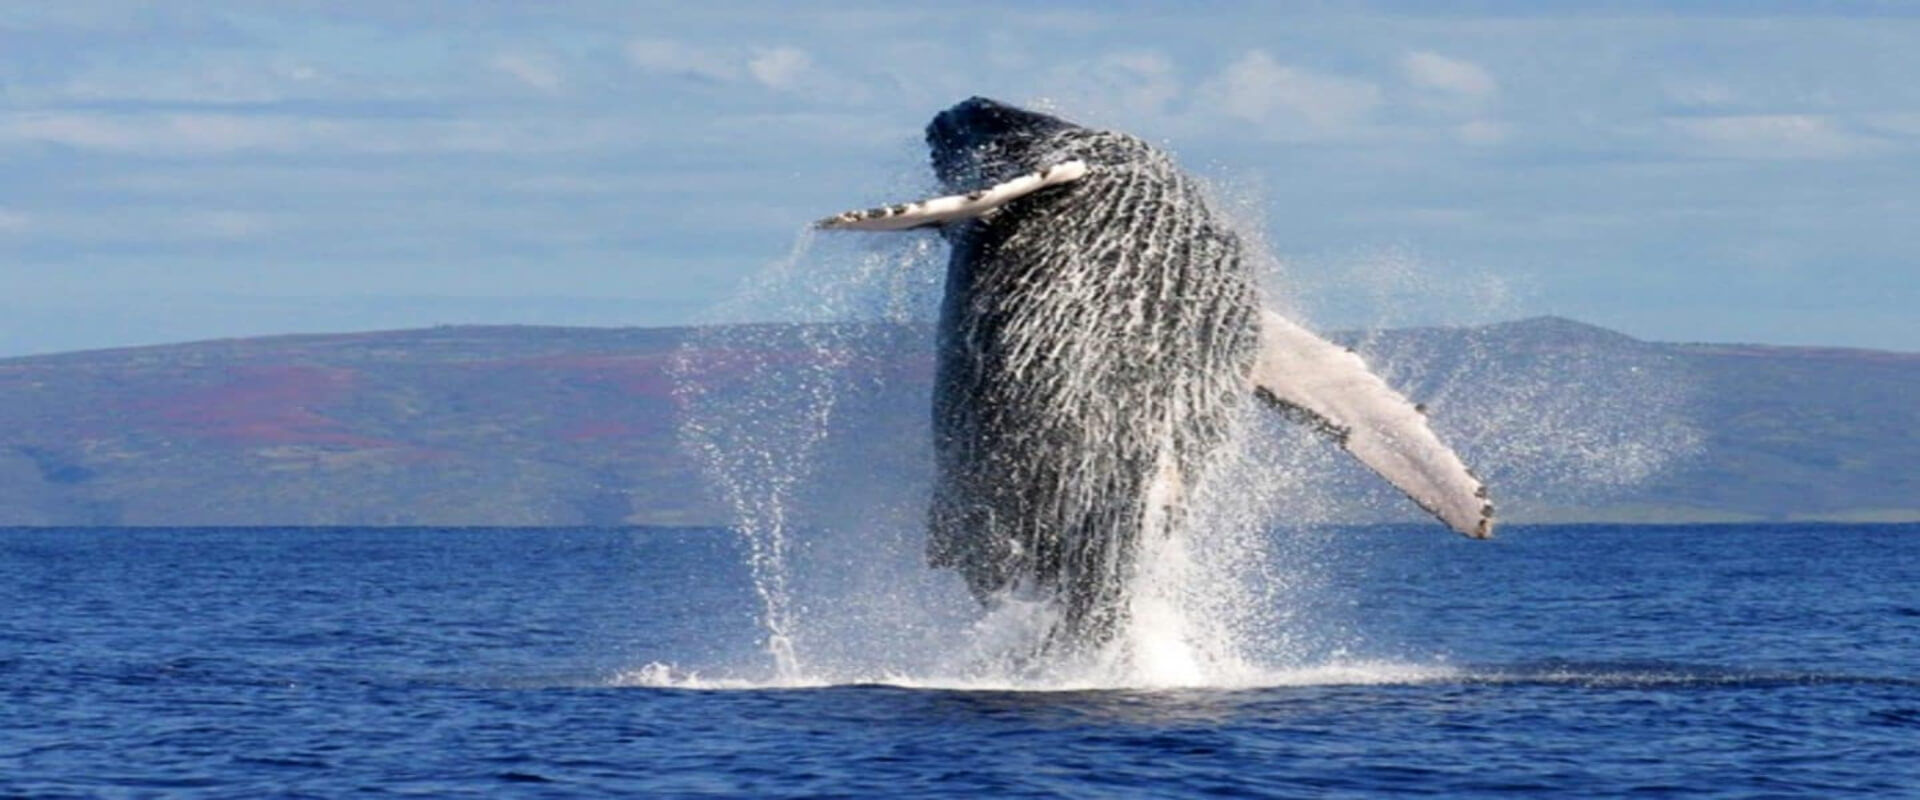 Dolphin and Whale Watching Tour | Costa Rica Jade Tours